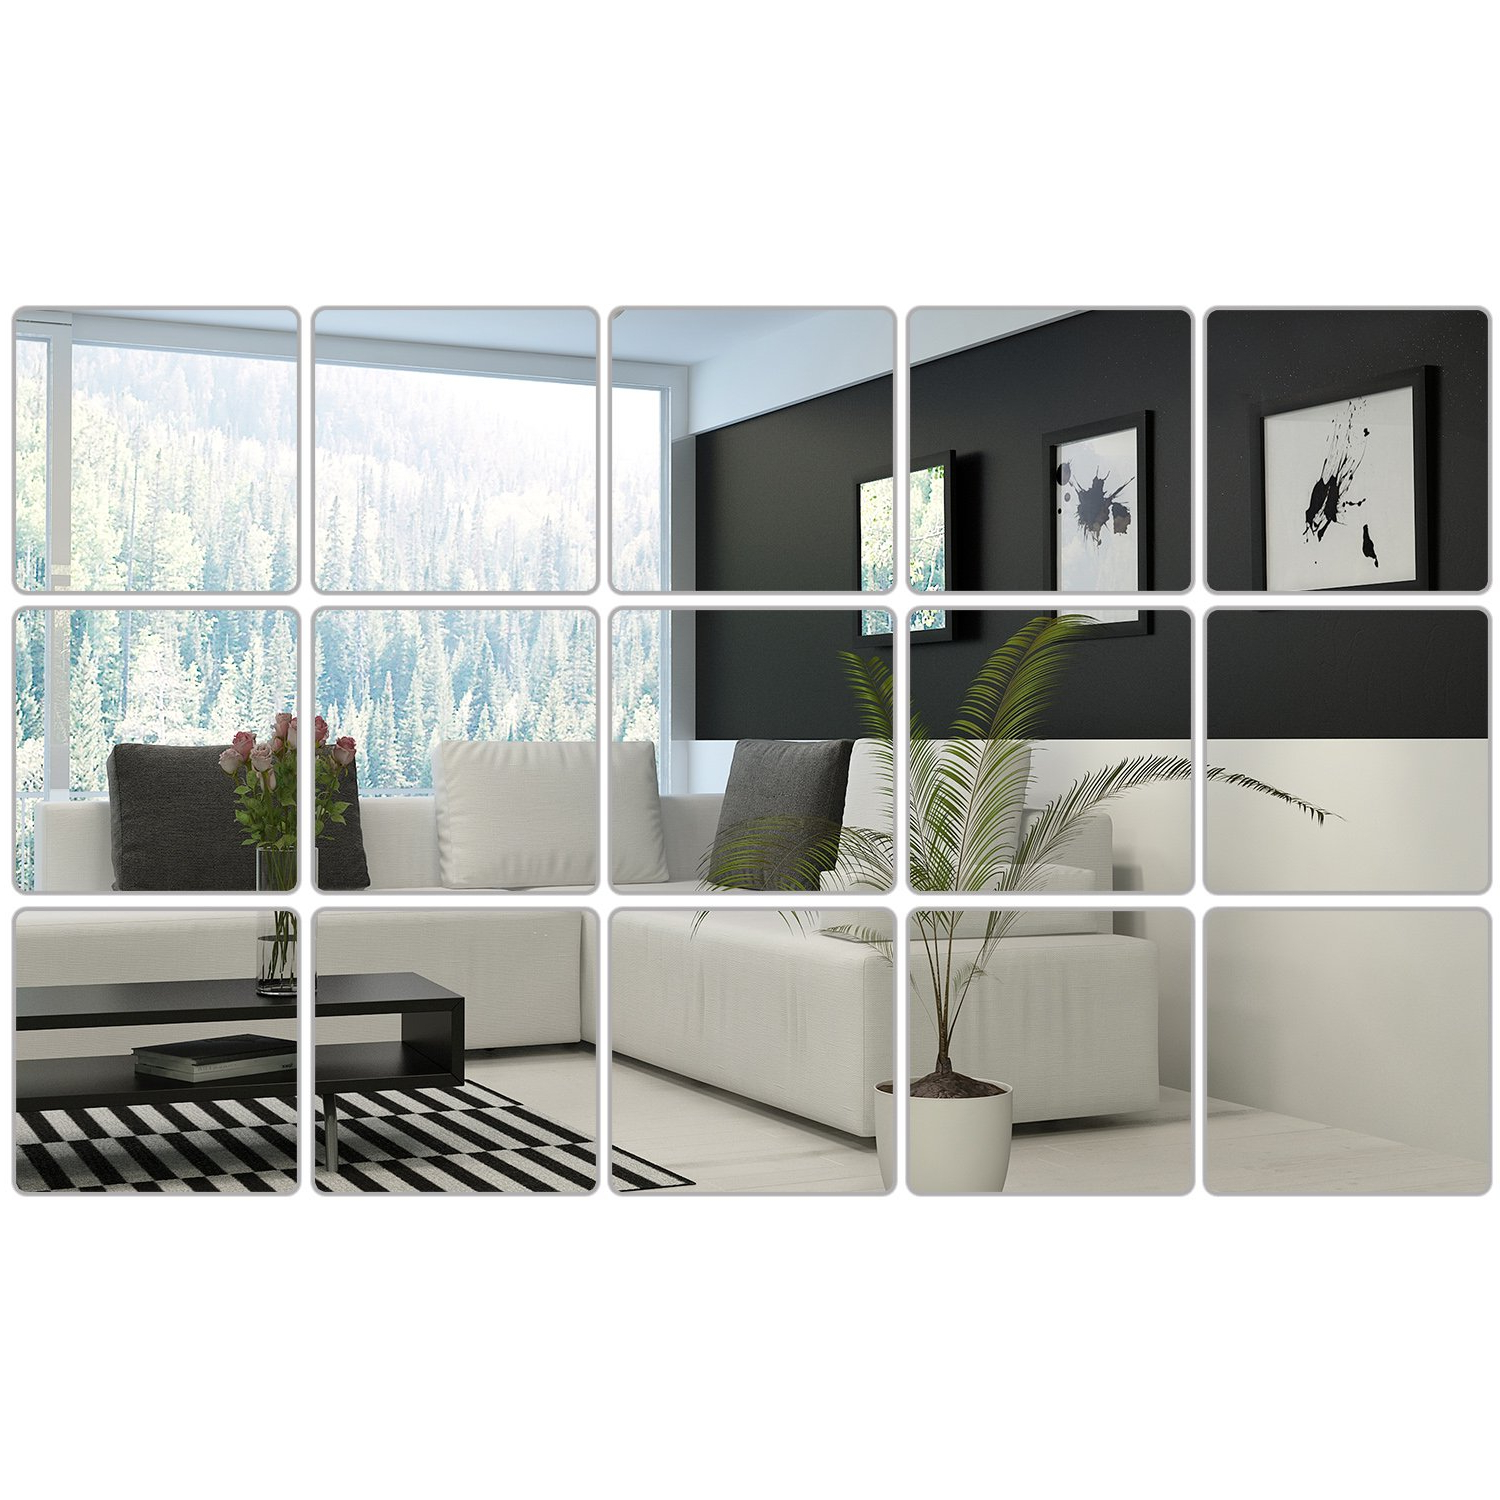 6 X 6 Inches Mirror Sheets Decals Self Adhesive Mirror Tiles Non Glass  Mirror Stickers, 15 Pieces (Style 1) With Regard To Most Up To Date Stick On Wall Mirror Tiles (View 3 of 20)